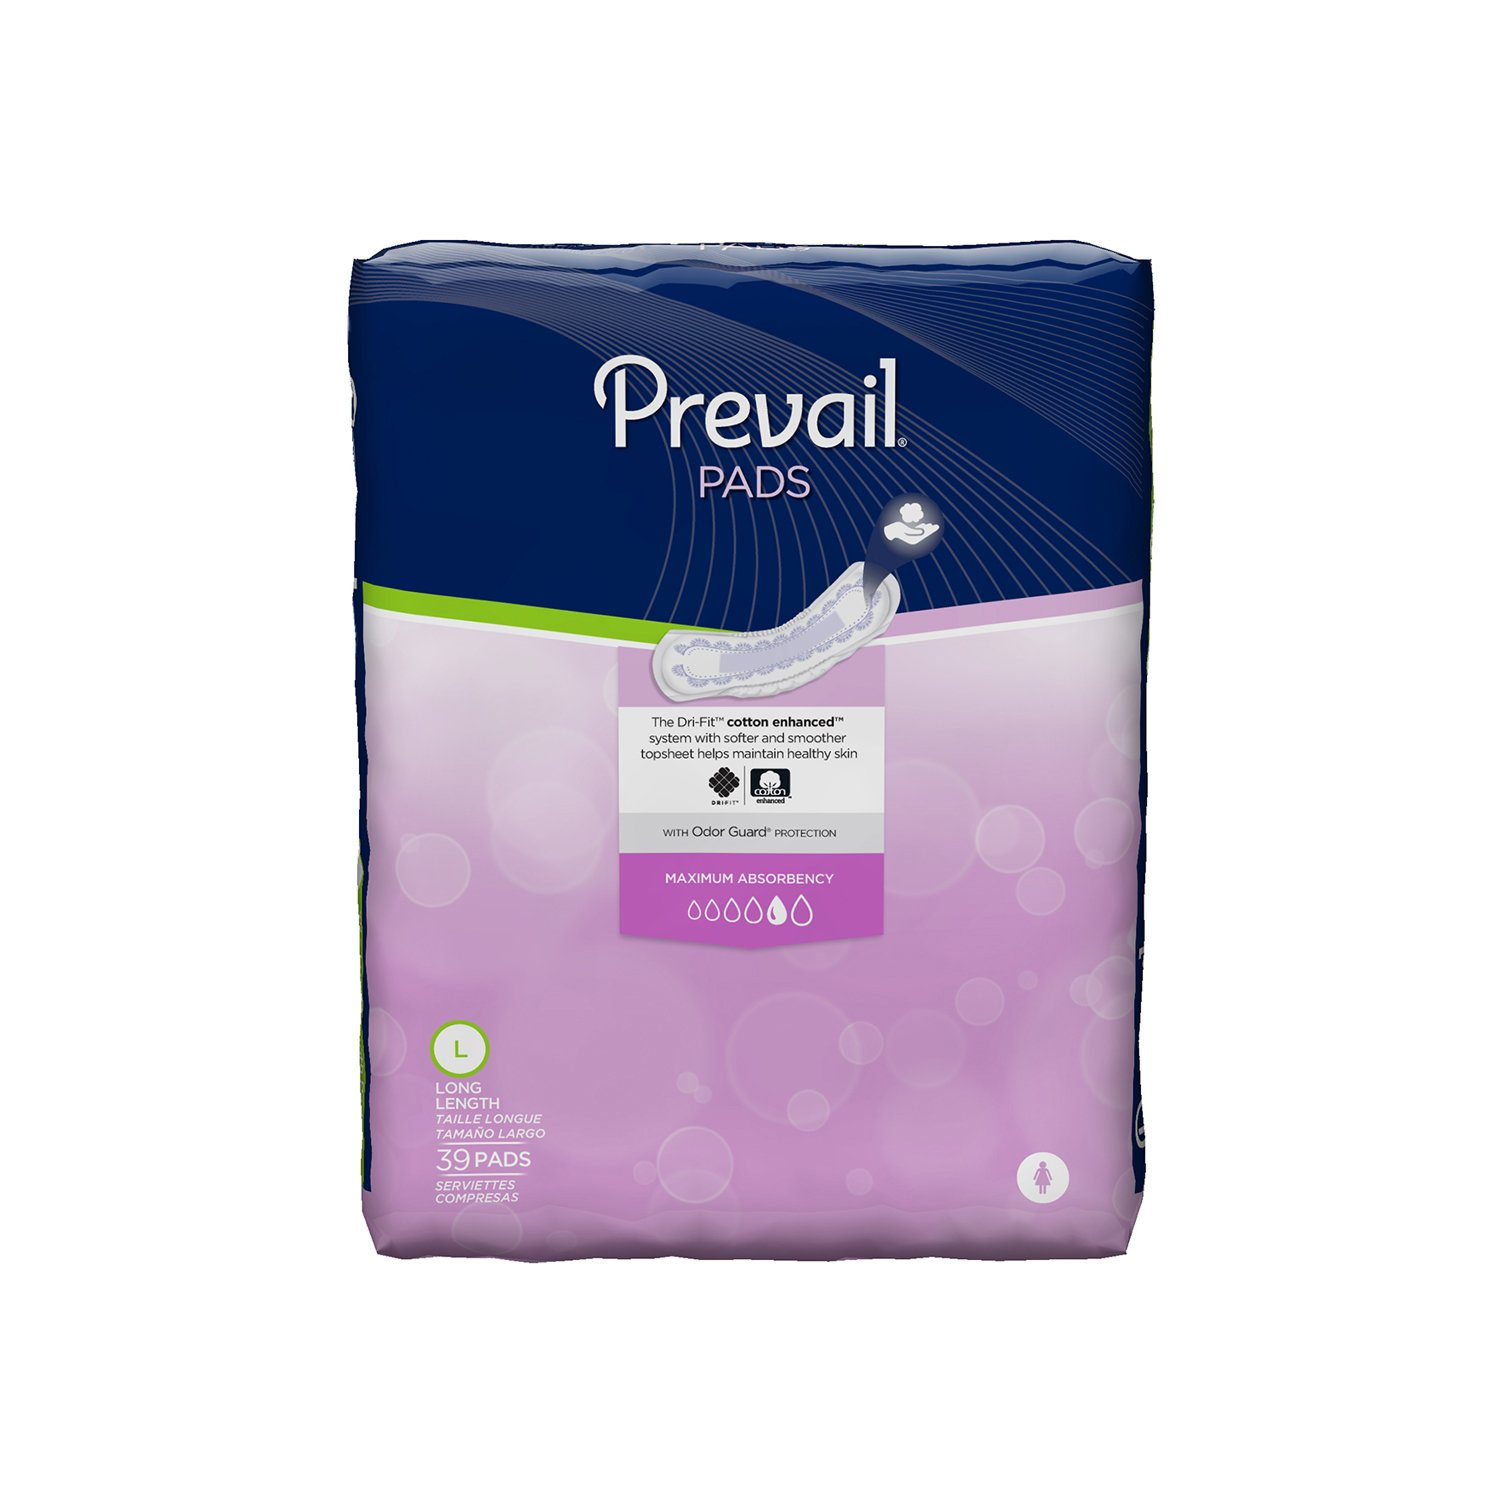 Prevail Maximum Absorbency Incontinence Bladder Control Pads, Long, 39-Count